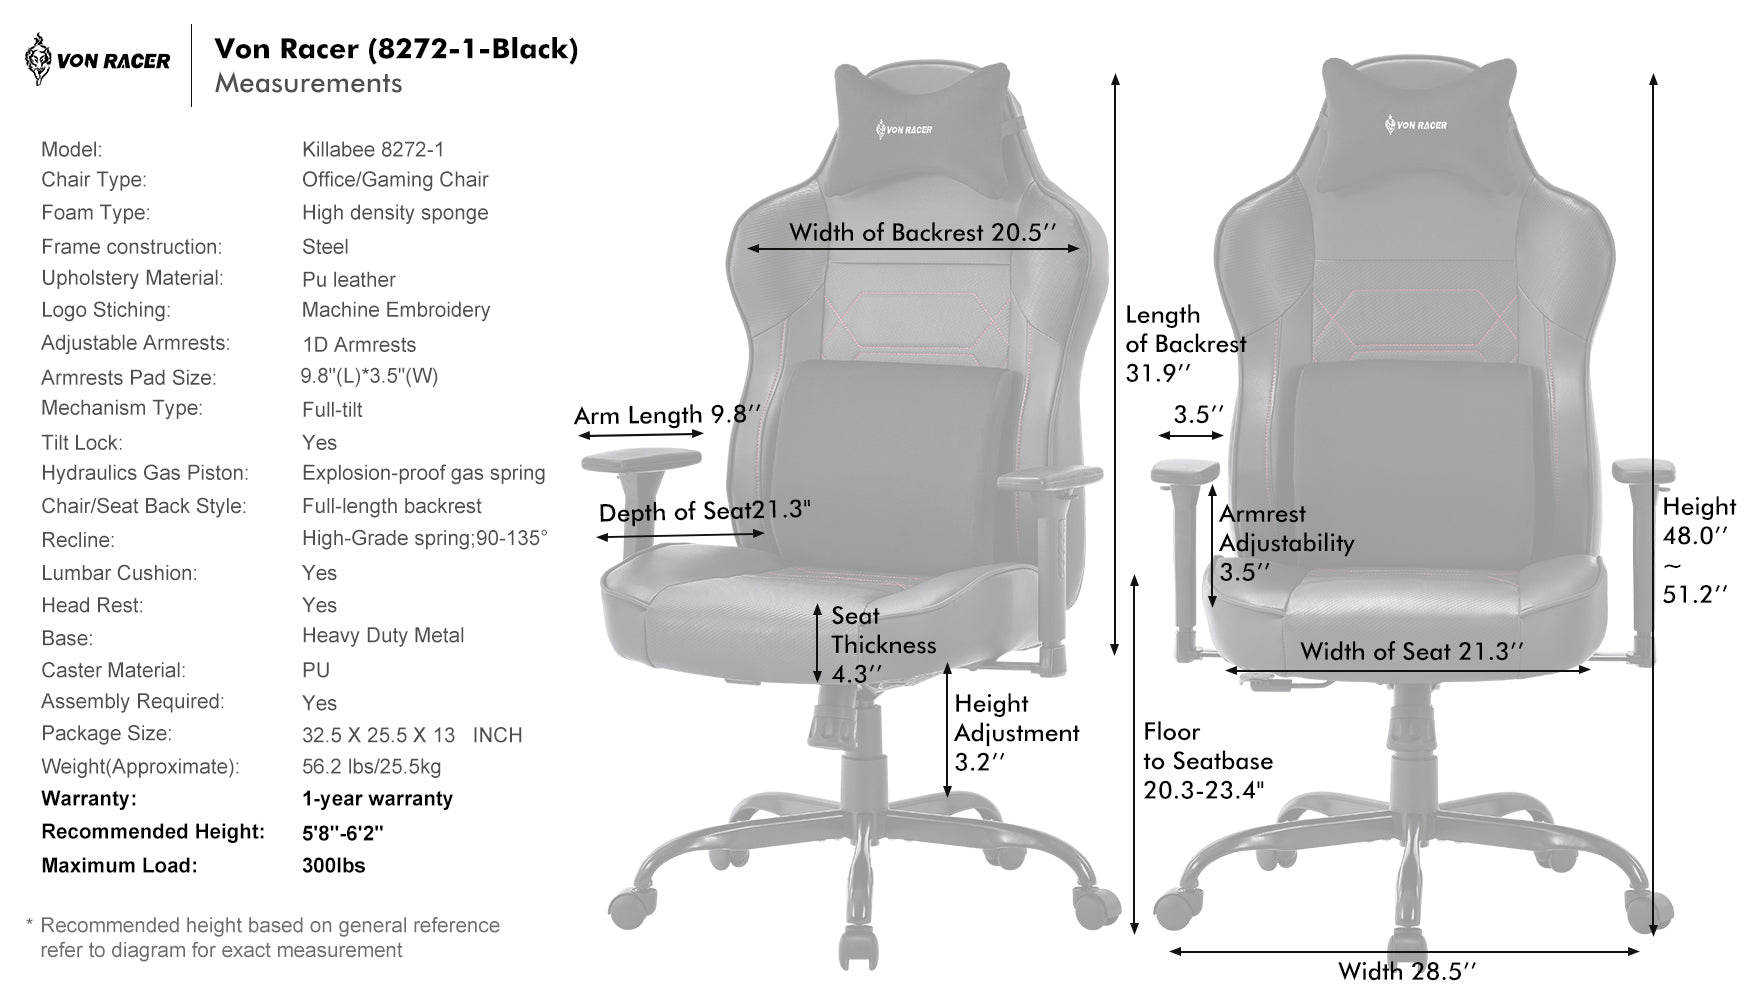 VON RACER 8272 MASSAGE GAMING CHAIR - SPECIFICATION